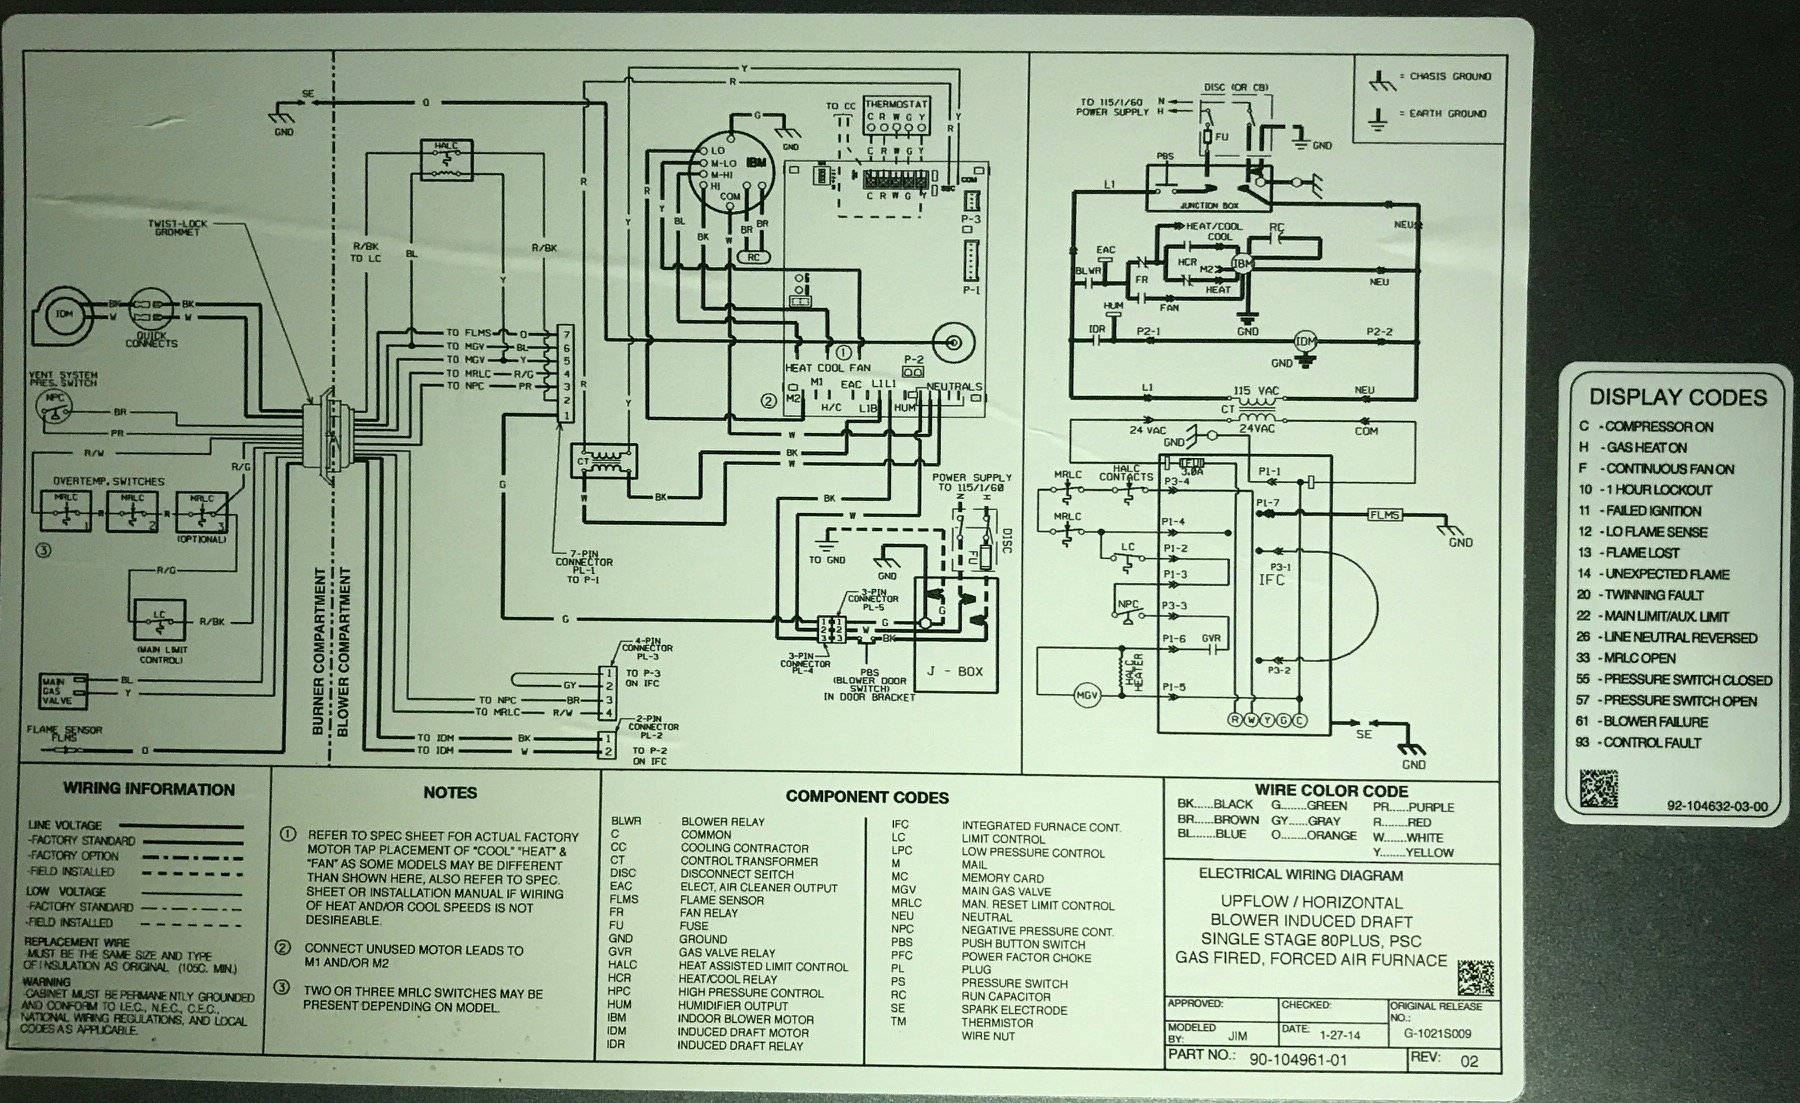 I Am Getting A Twinning Fault On My New Ruud Furnace It Was Working Gas Valve Relay Wiring Diagram Img 3388